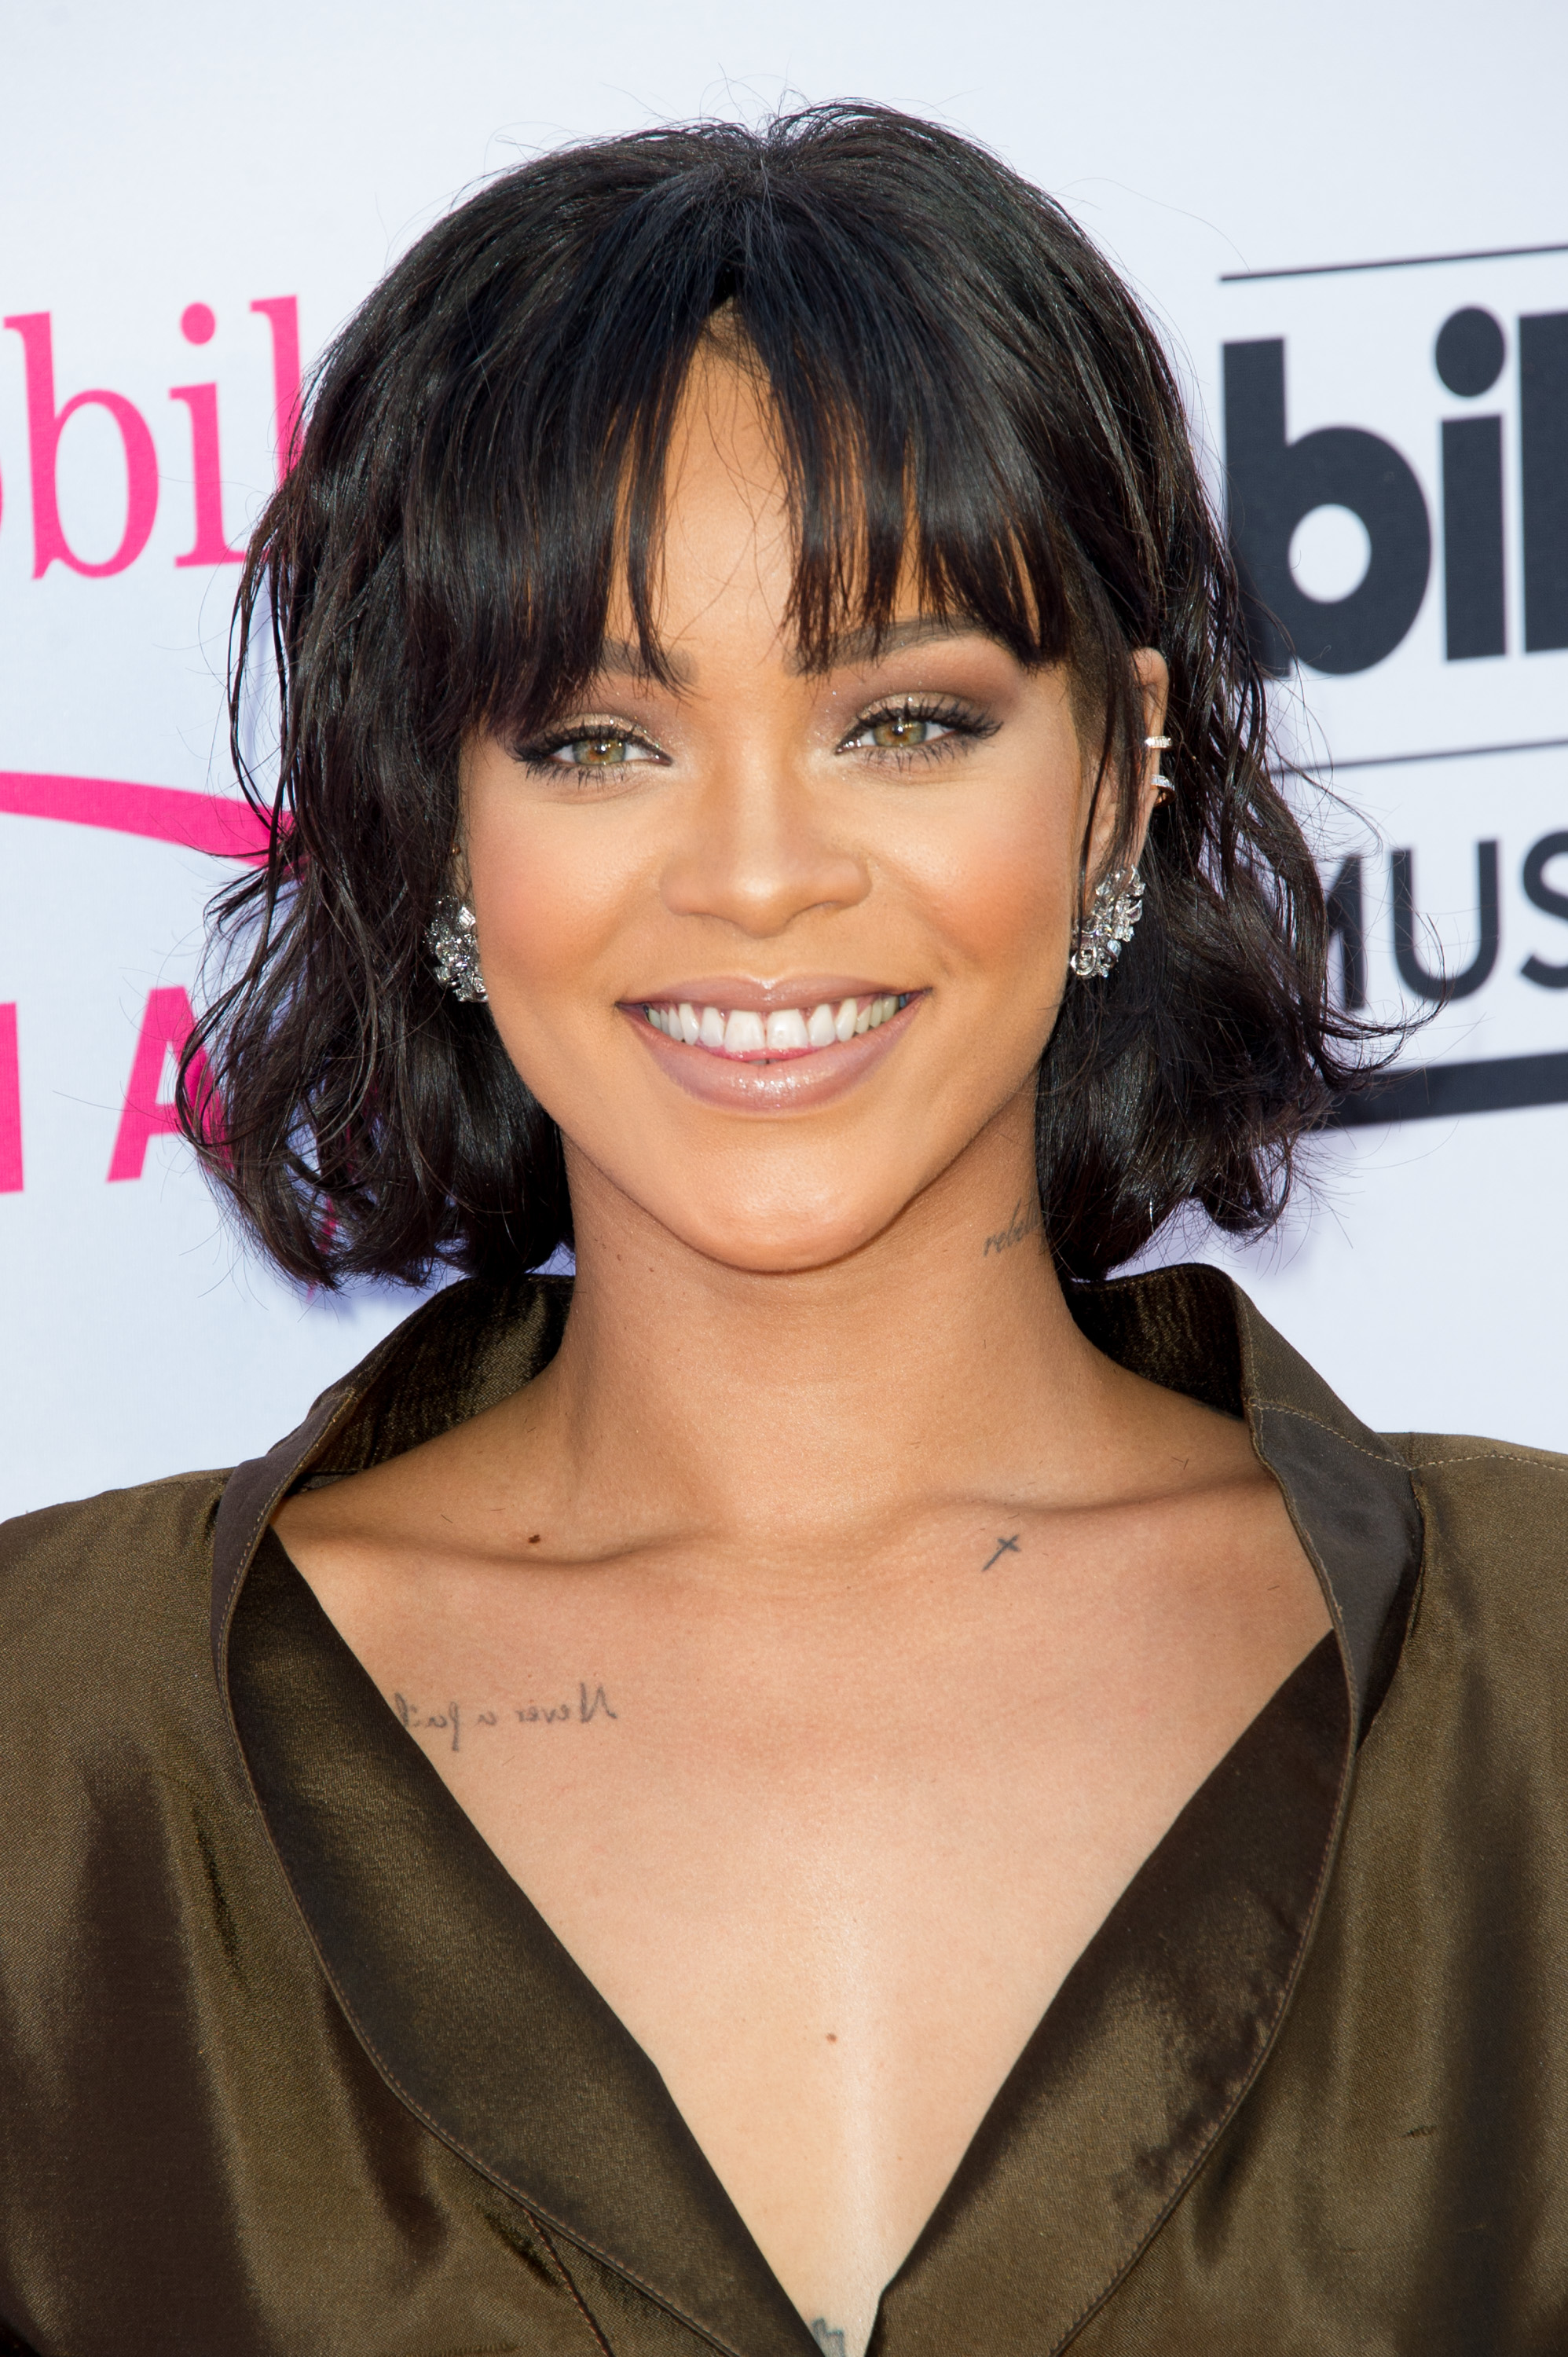 Stupendous 100 Hairstyles With Bangs You39Ll Want To Copy Celebrity Haircuts Short Hairstyles For Black Women Fulllsitofus